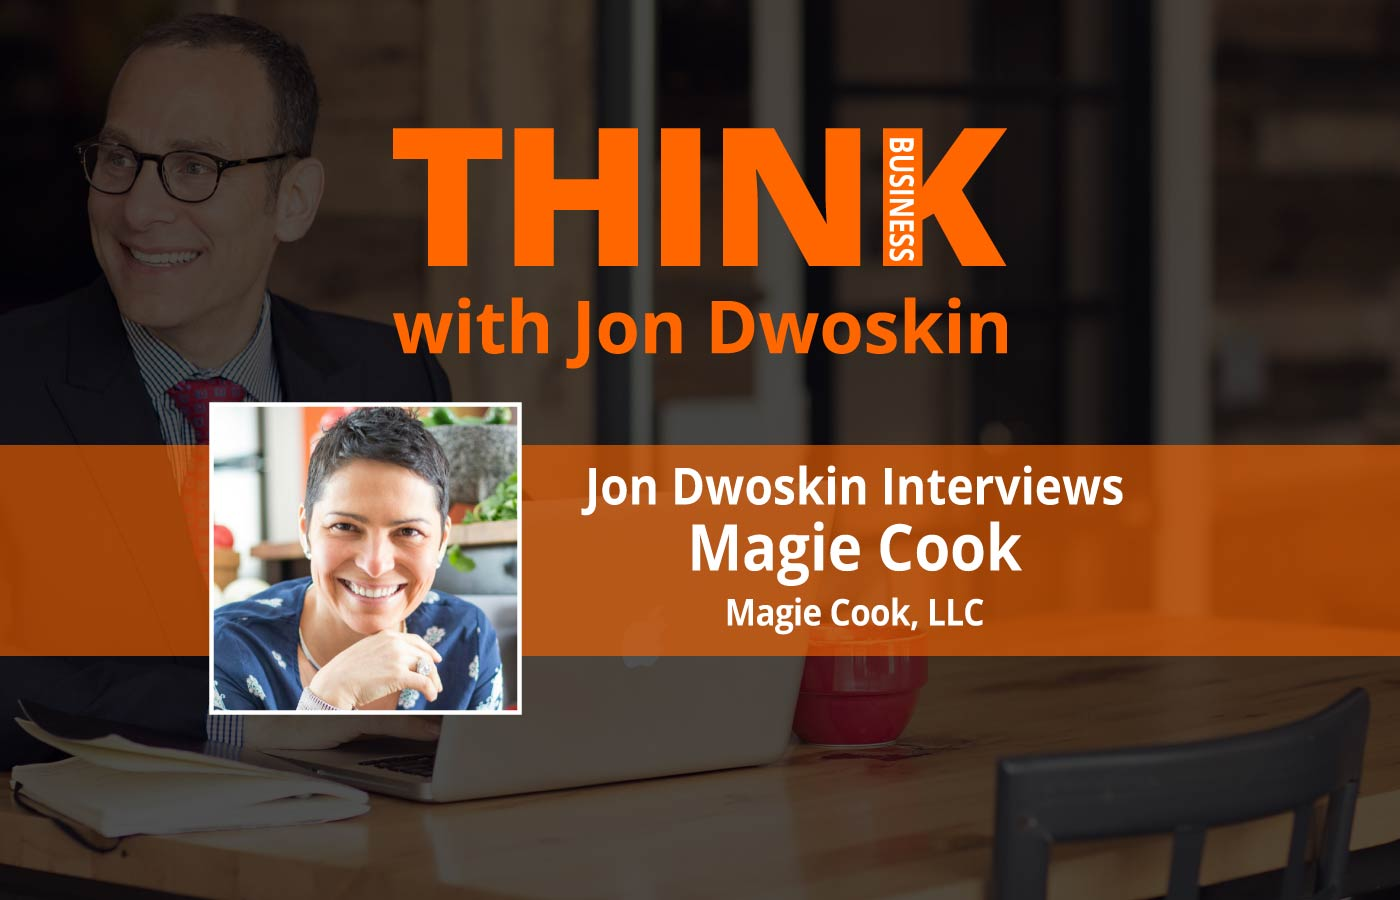 THINK Business Podcast: Jon Dwoskin Interviews Magie Cook of Magie Cook, LLC